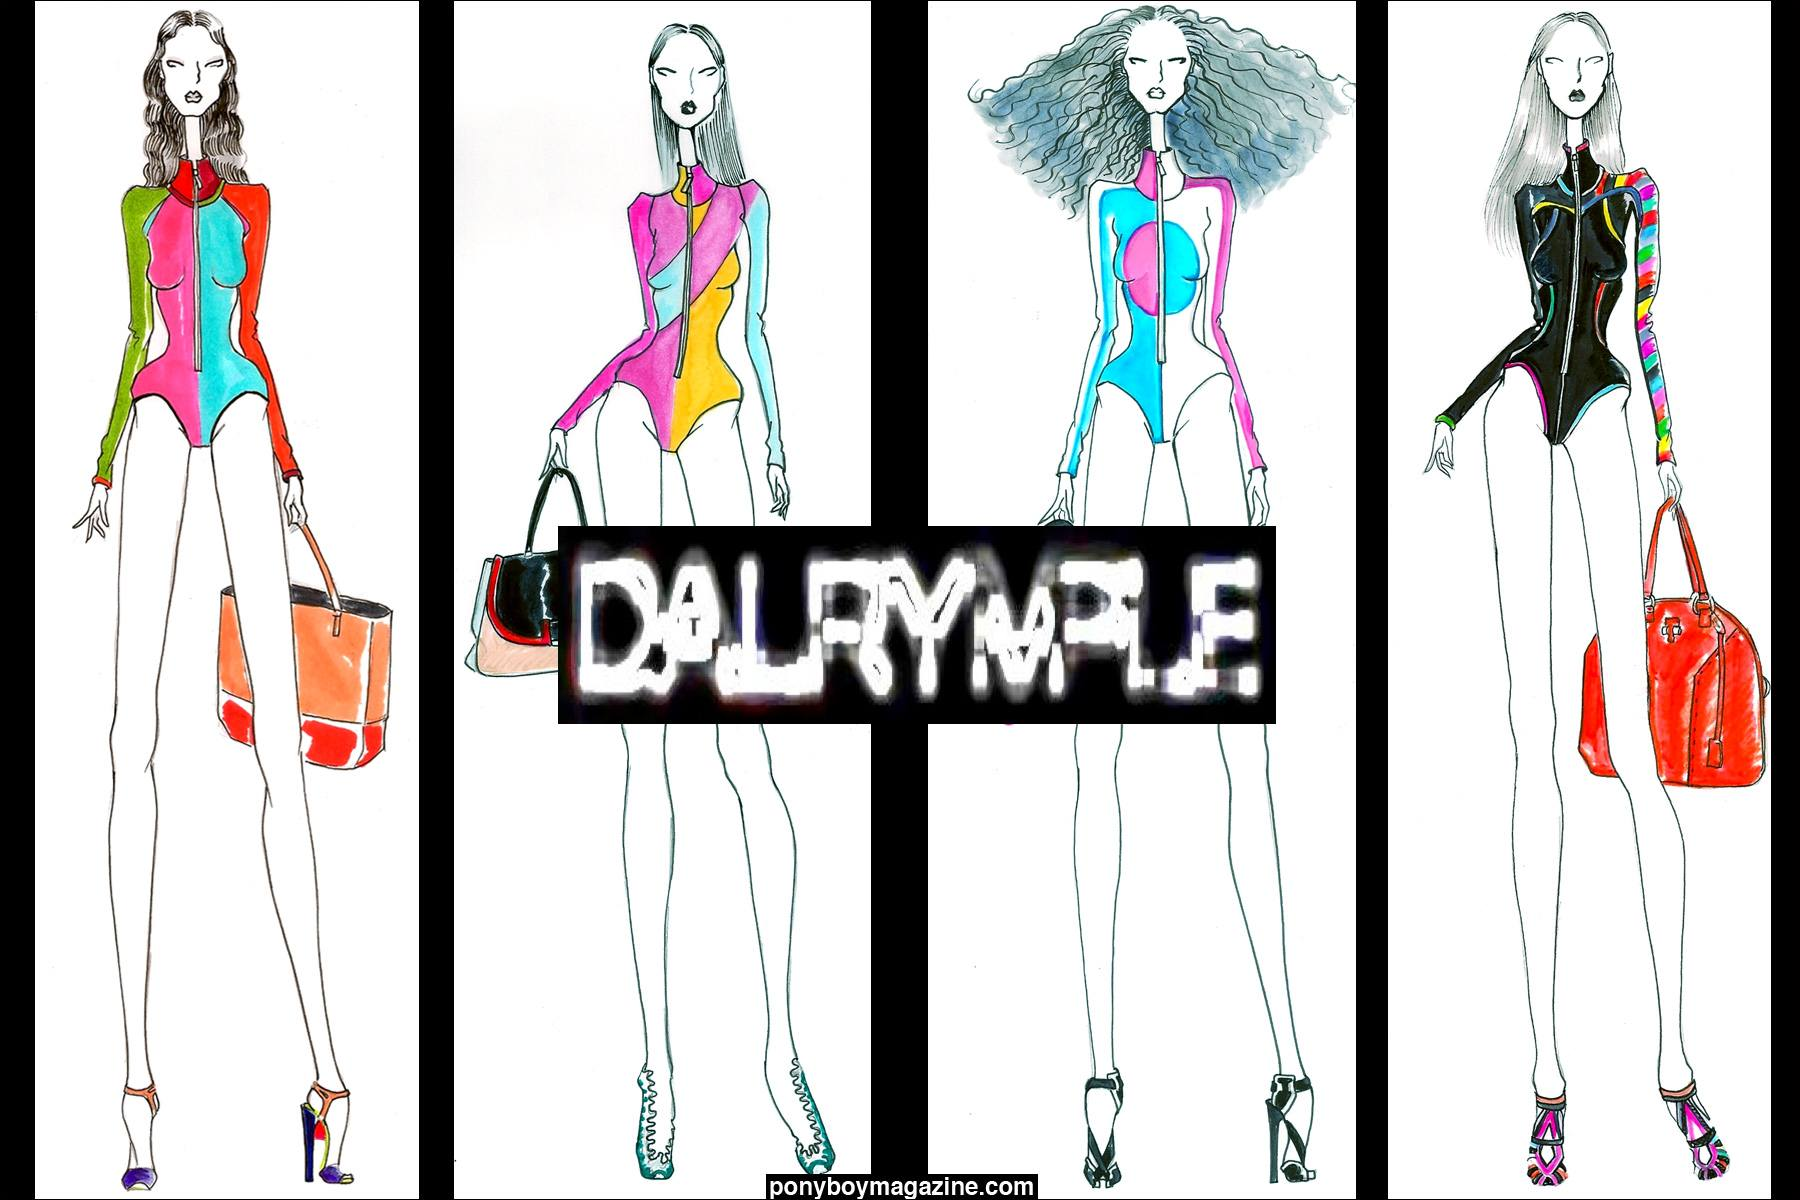 Illustrations for David Dalrymple designs. Ponyboy Magazine.